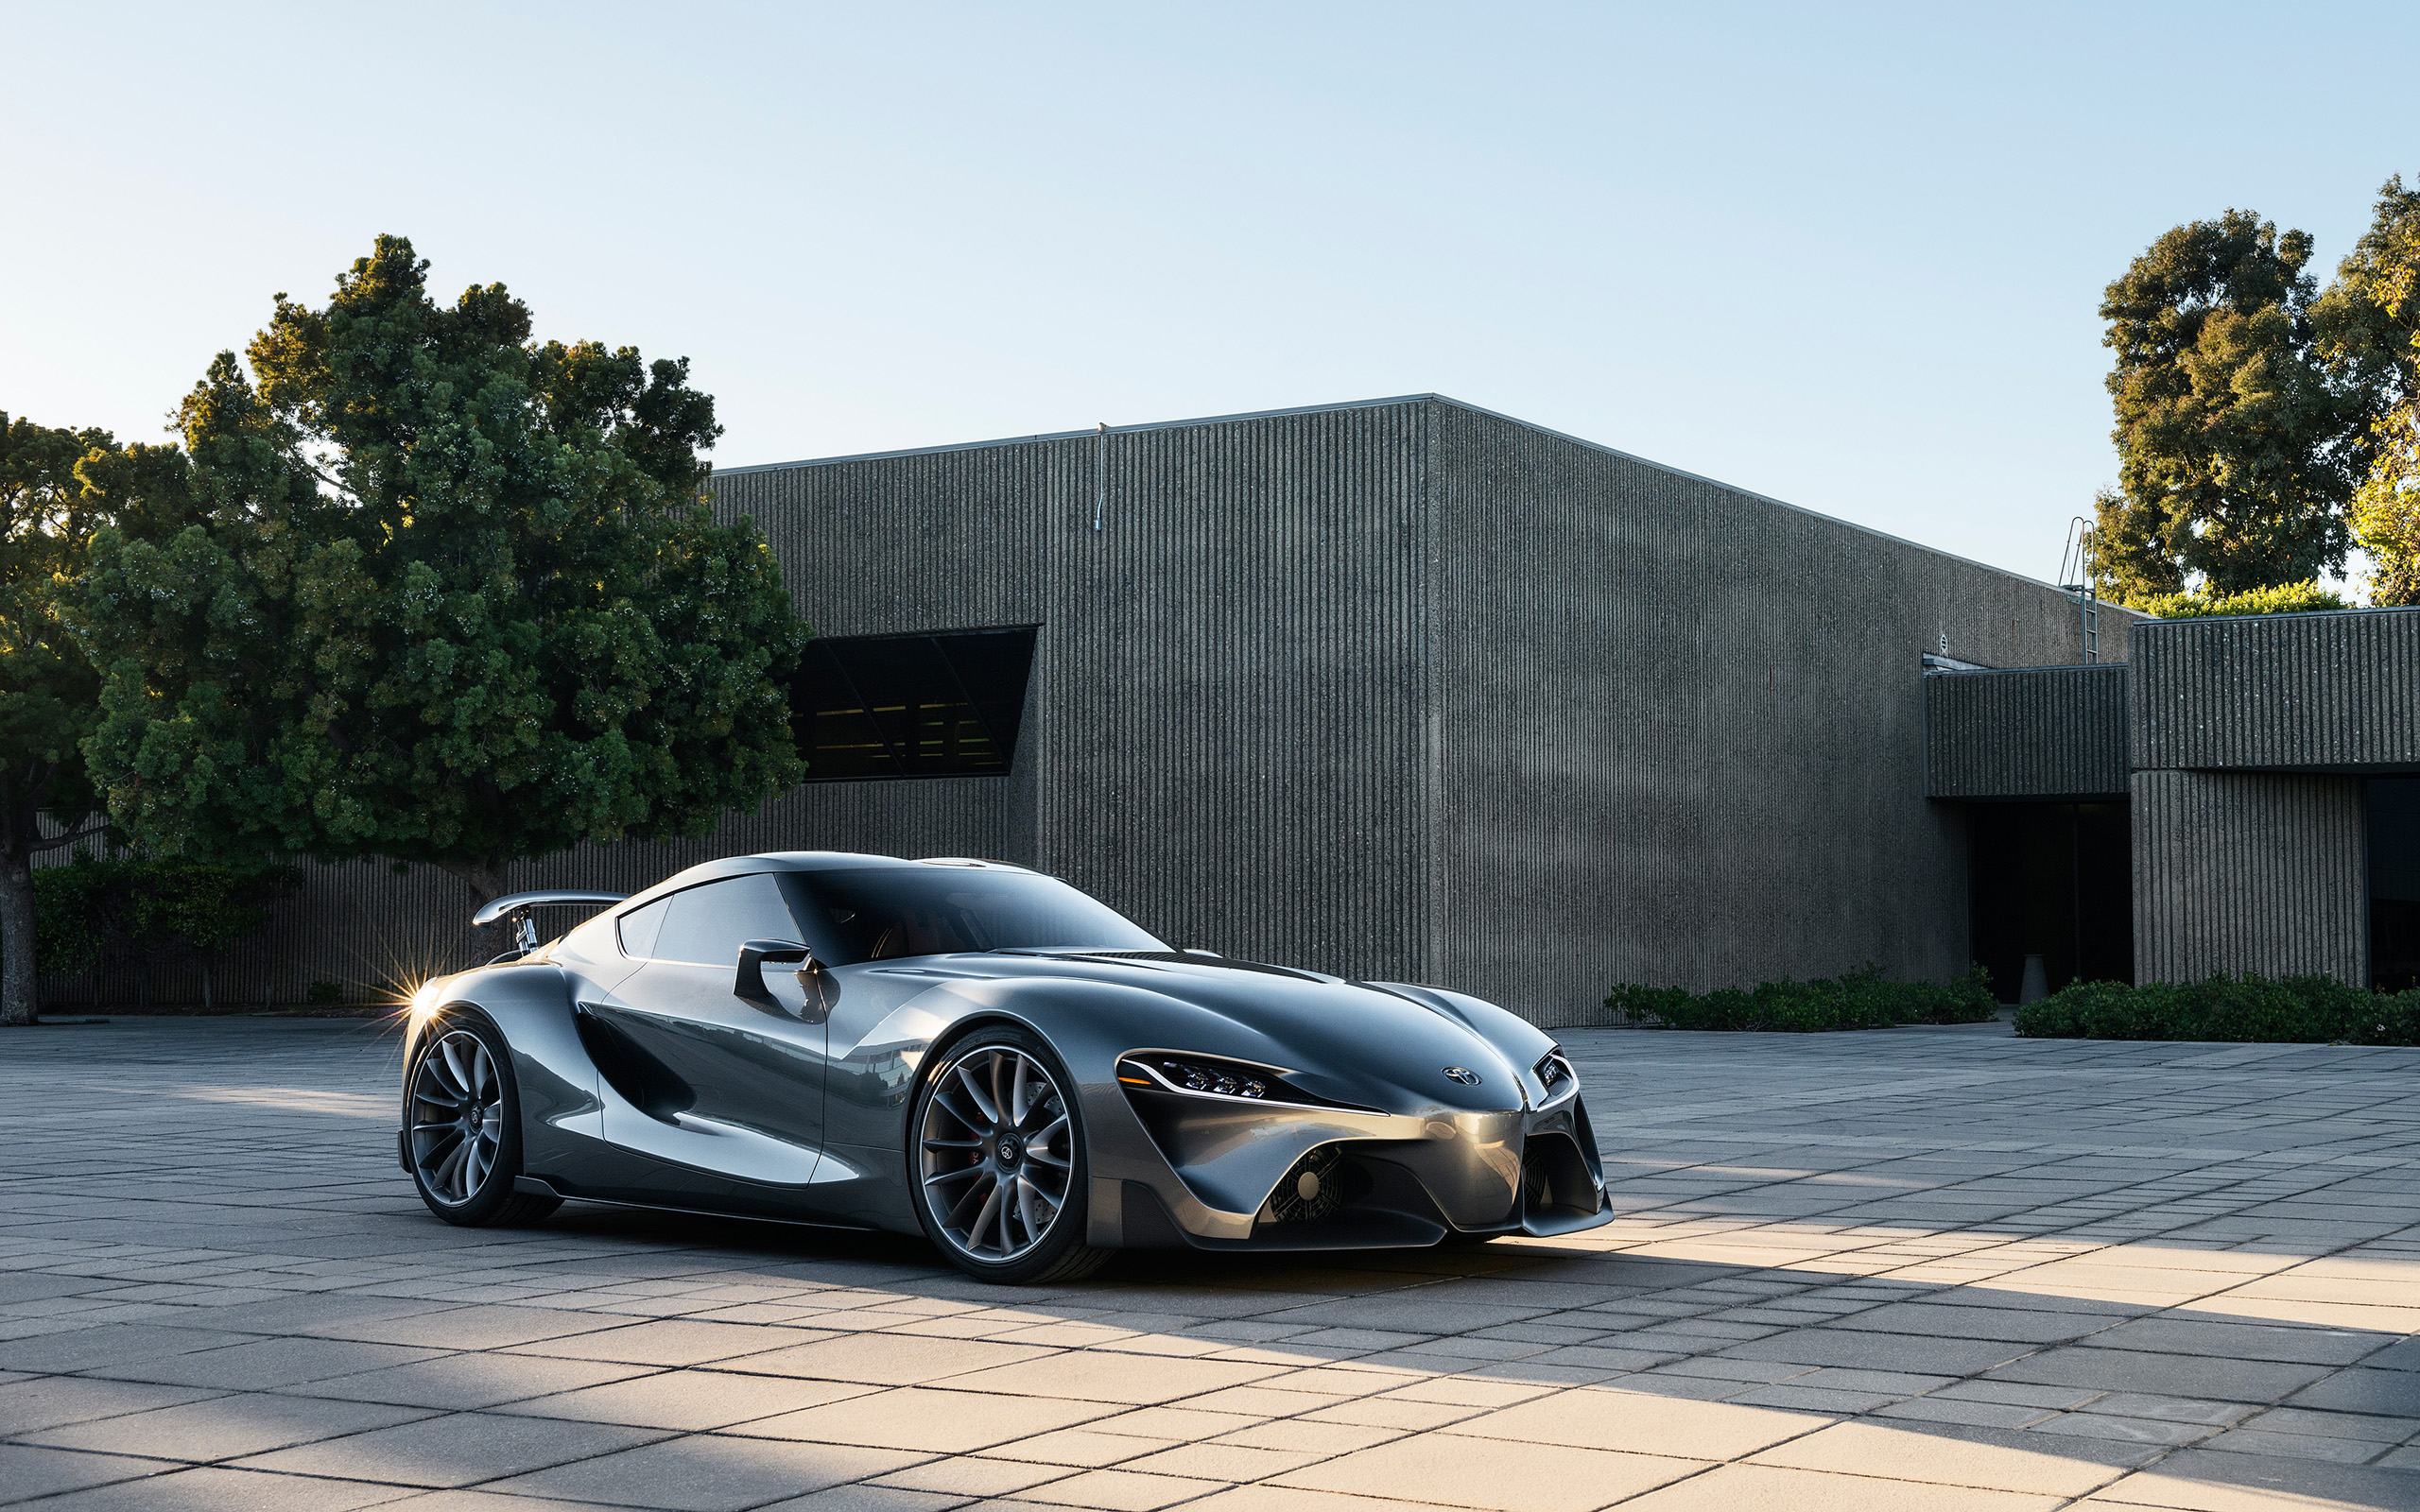 toyota ft 1 concept wallpaper hd 47601